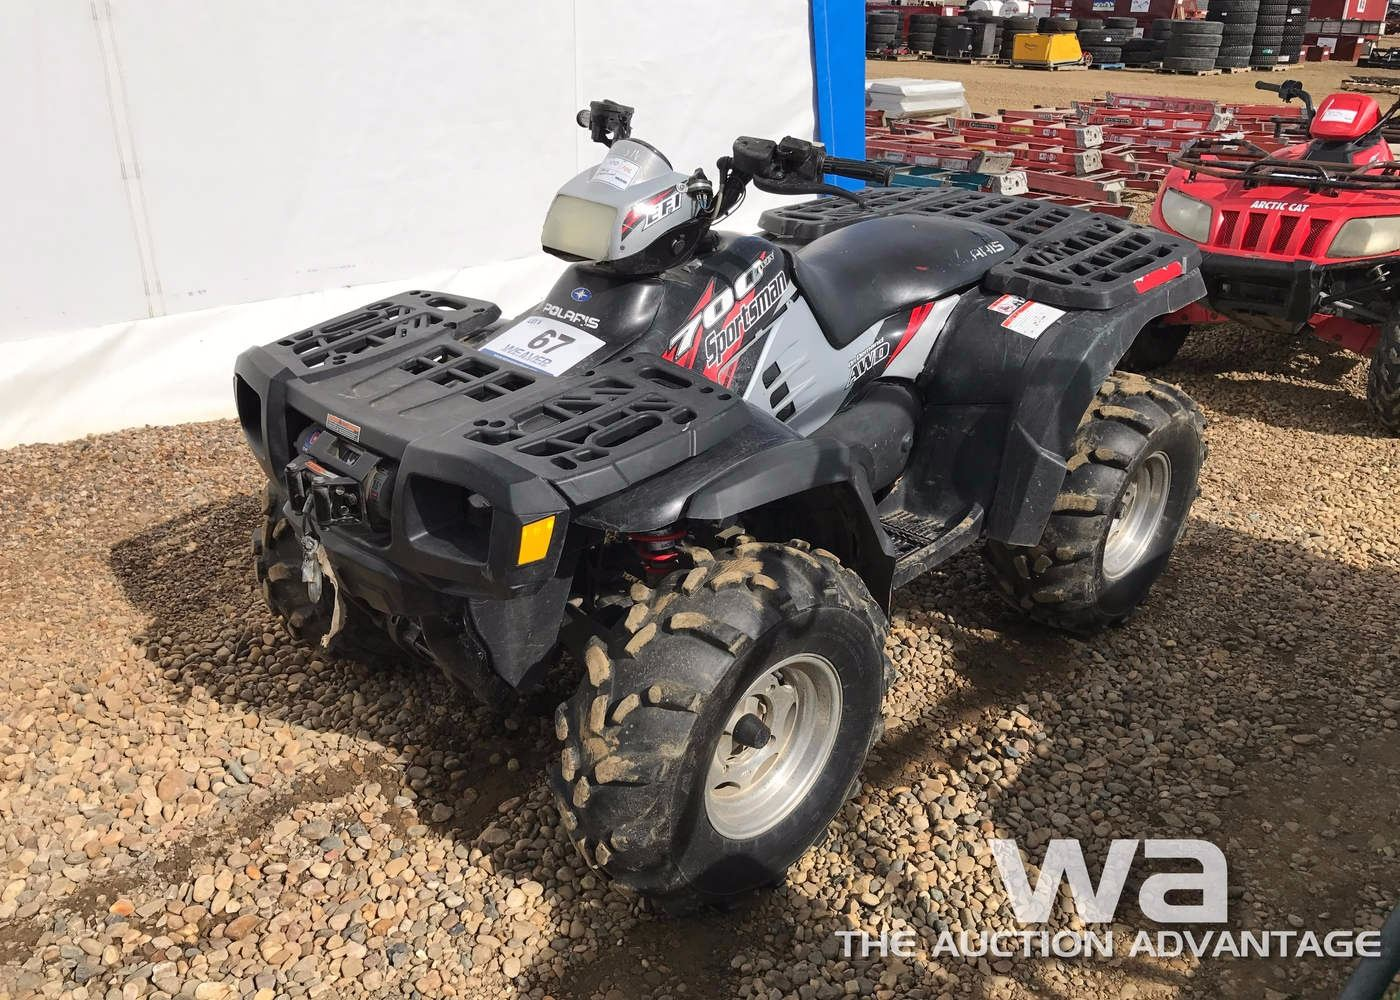 2004 POLARIS SPORTSMAN 700 TWIN ATV